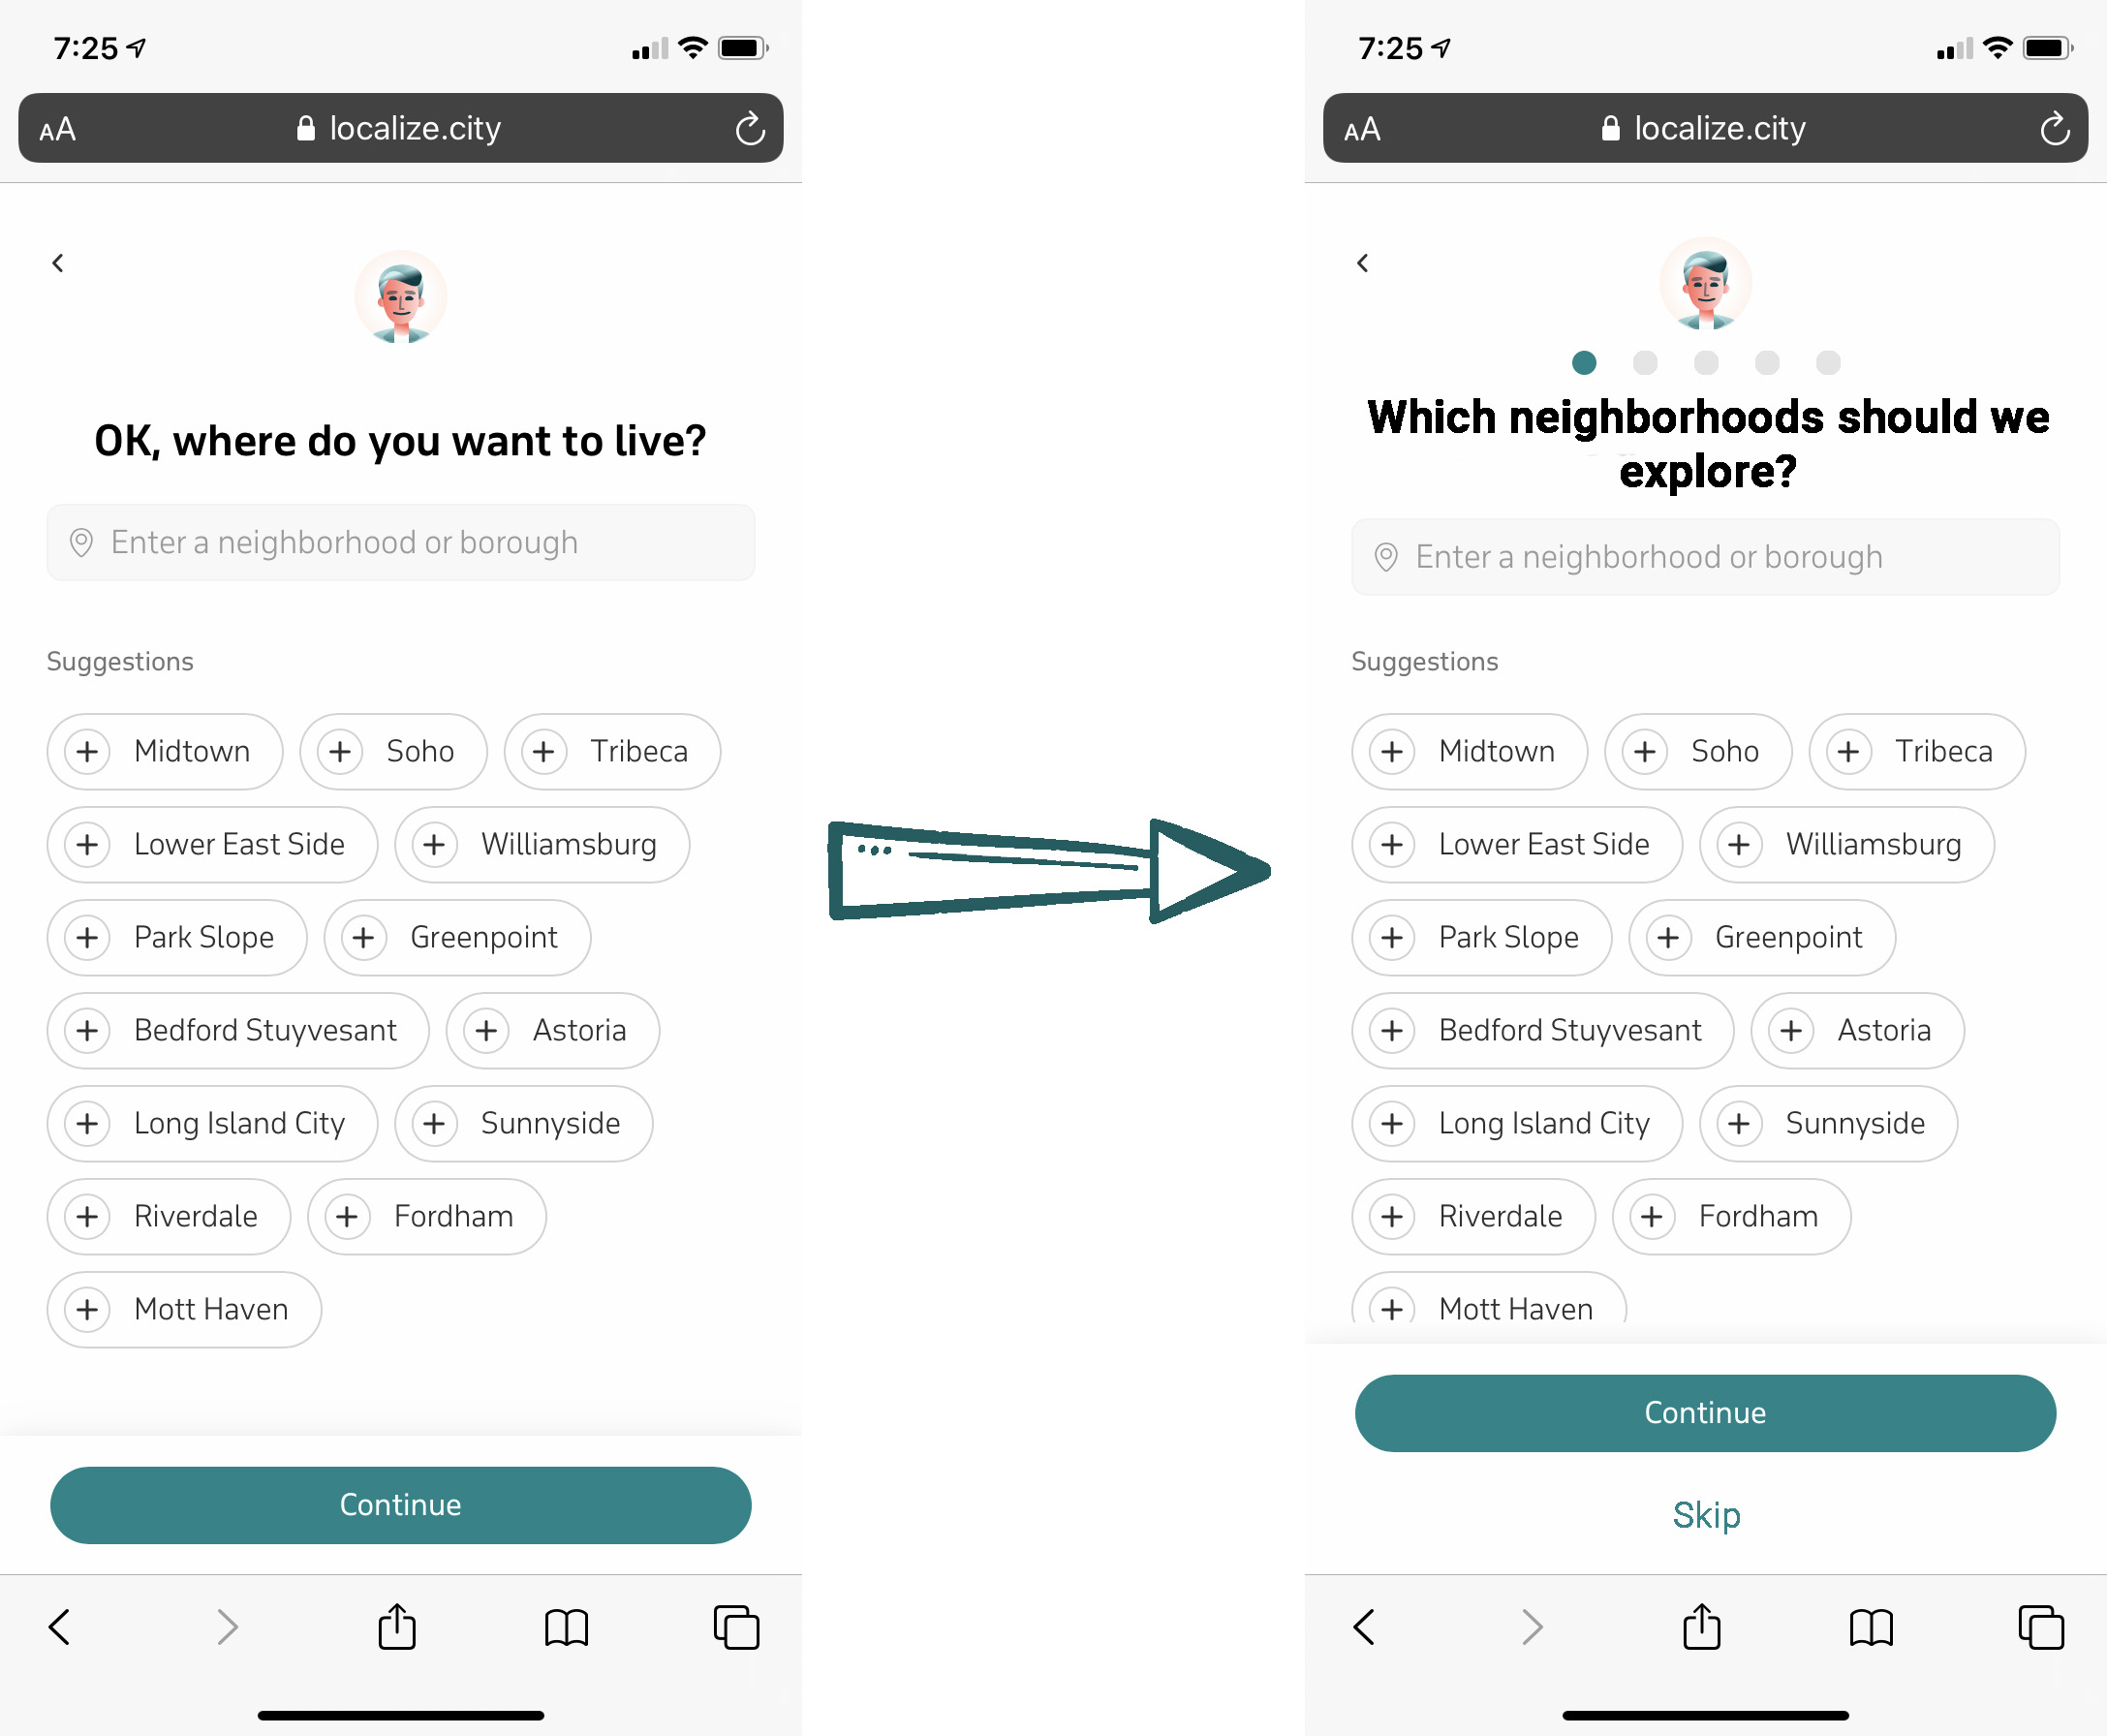 Before and after images of the third screen in the onboarding flow - neighborhood selection